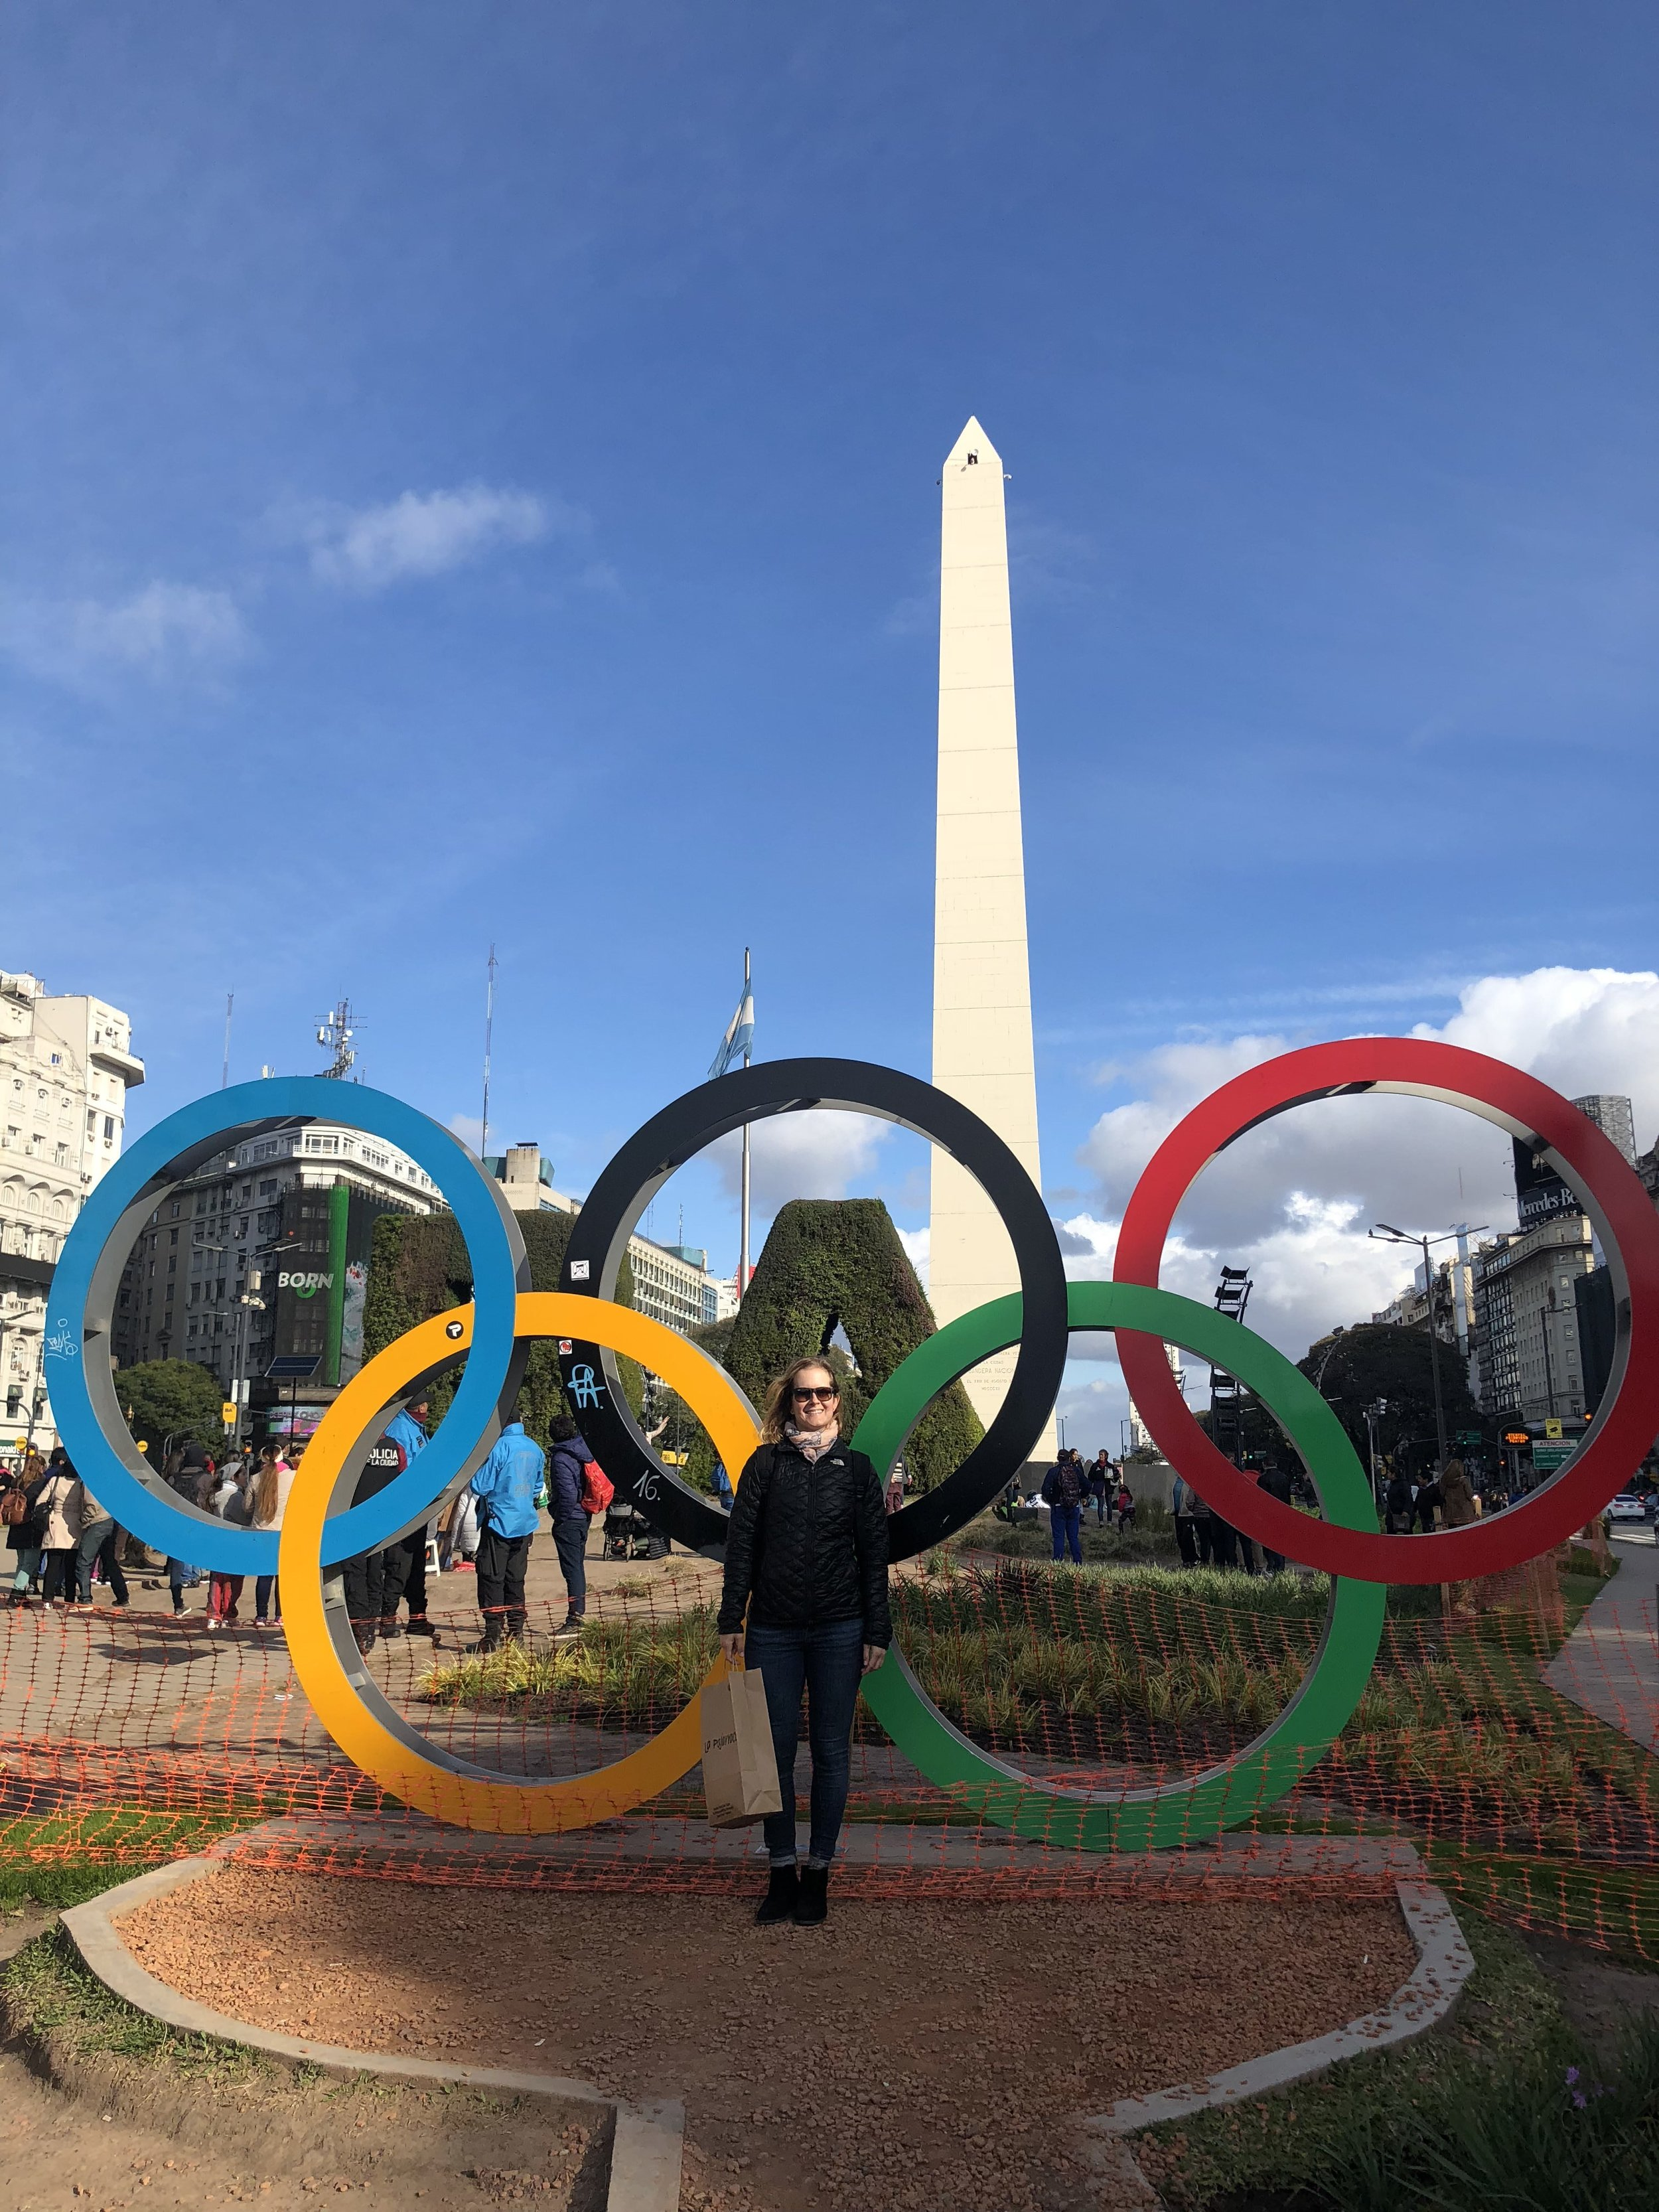 The youth Olympic games were starting a week later so the city was getting ready. Since I am an Olympics nerd, (so is Linds) we had to pose with the rings.